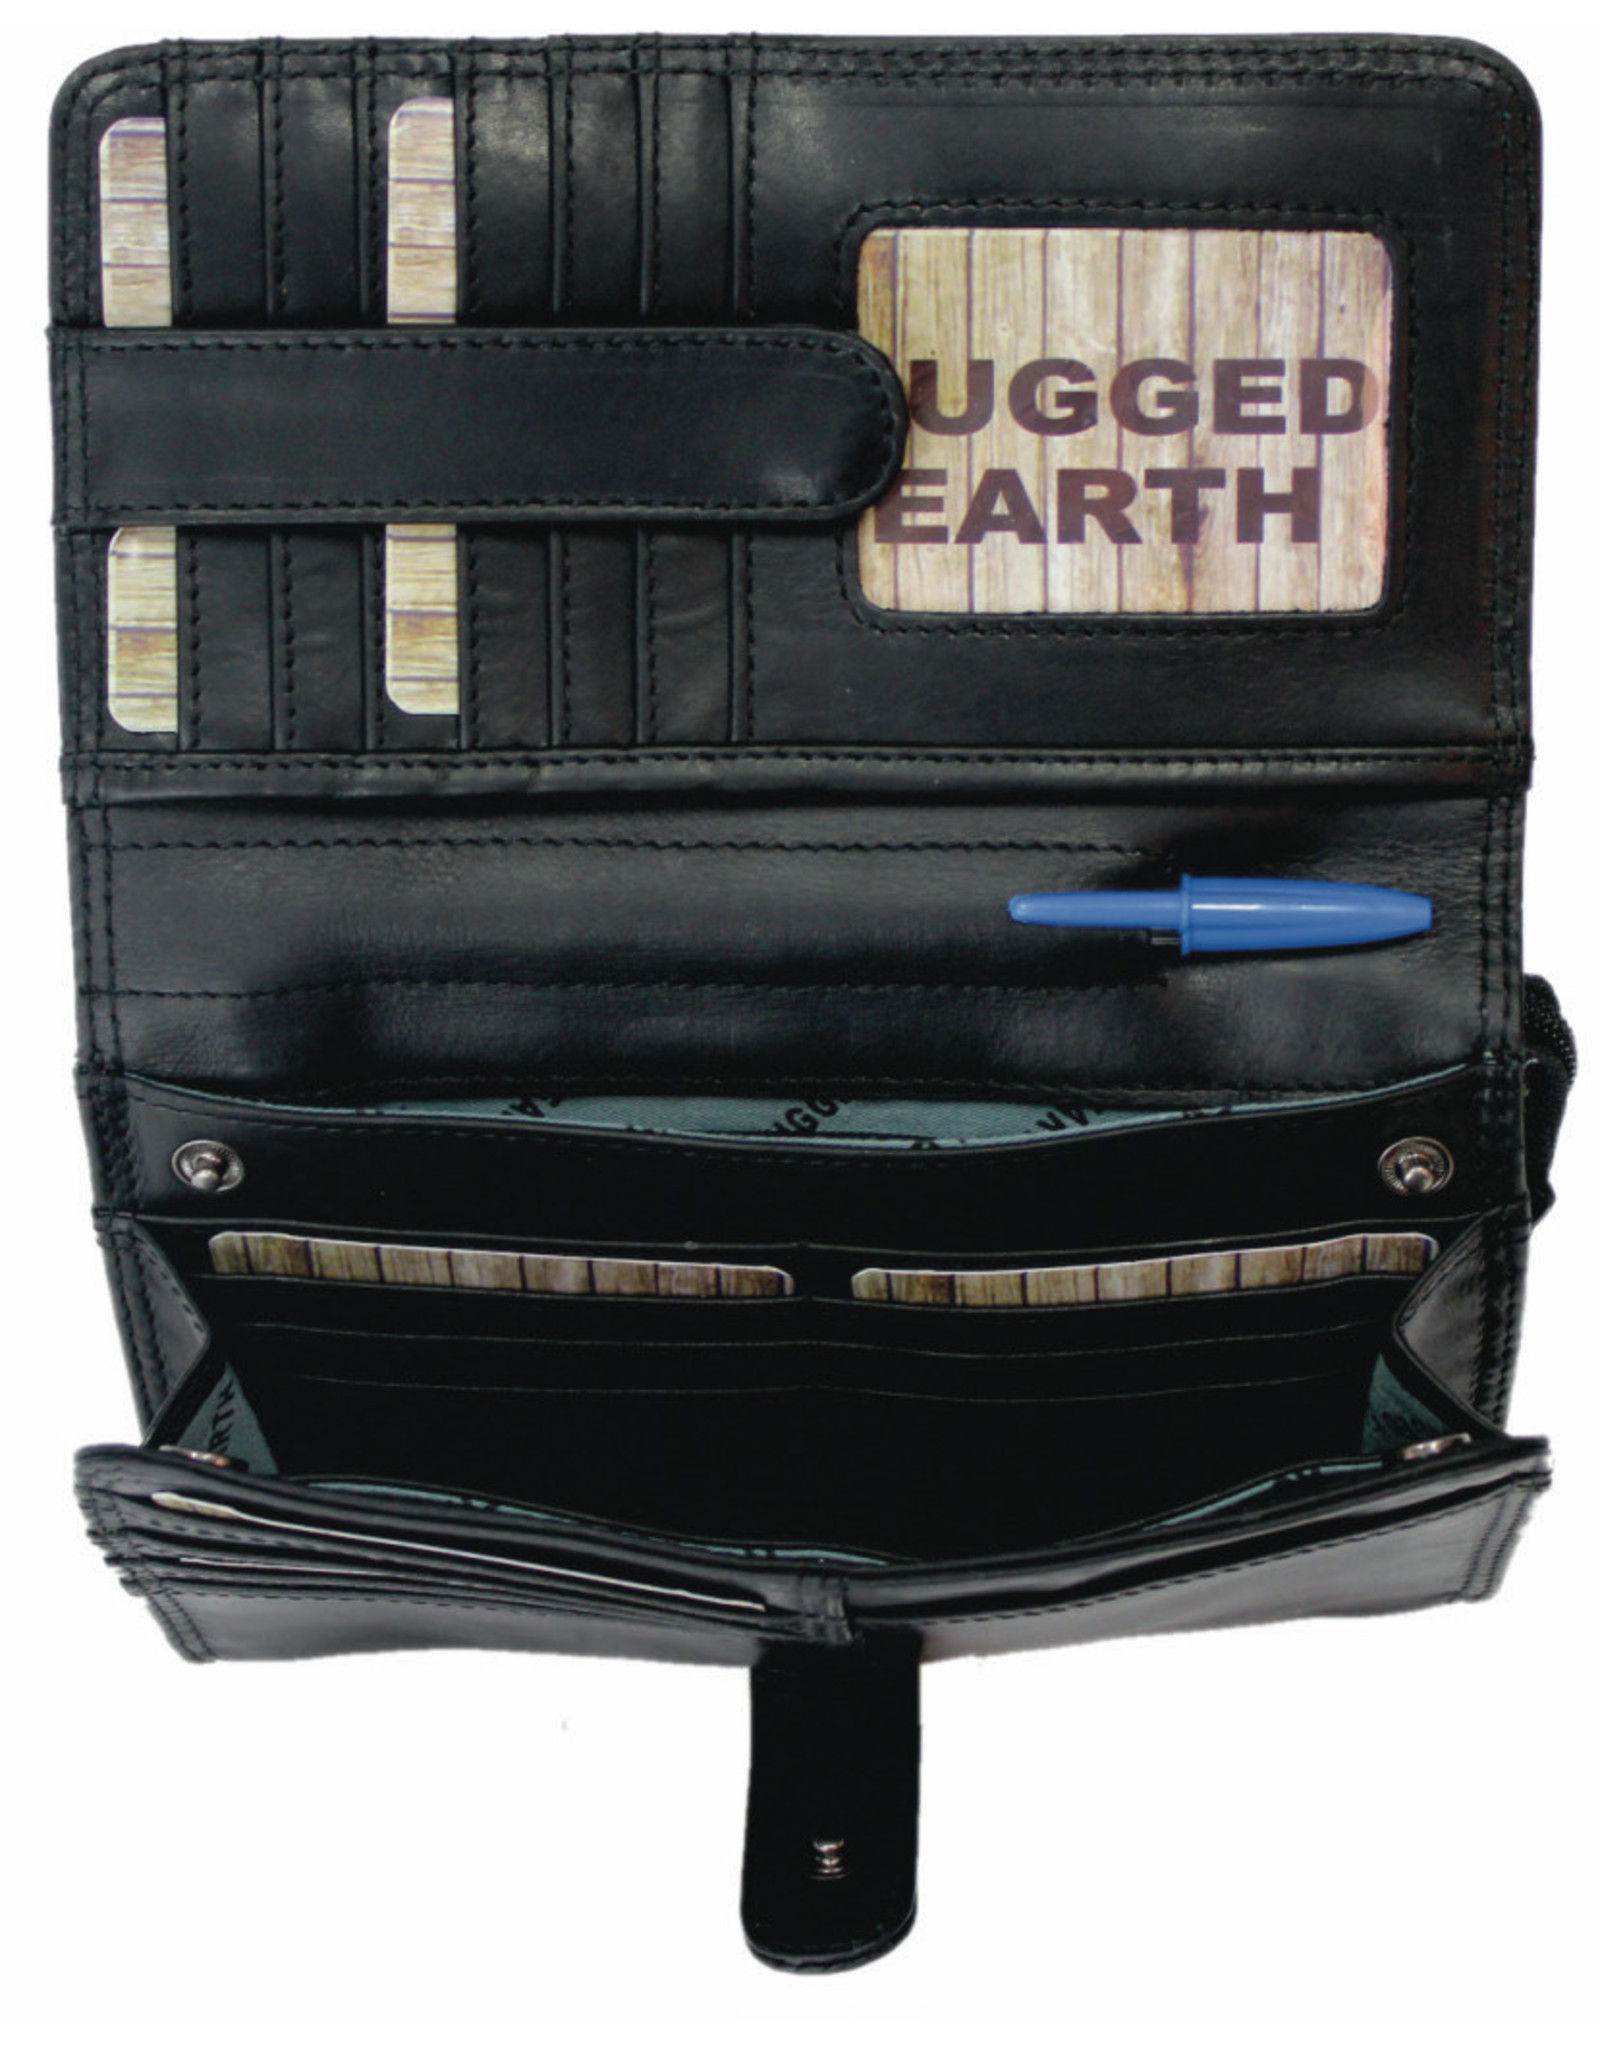 "Rugged Earth Rugged Earth Organizer 188020 Black W 8""*H 55""D 2"""